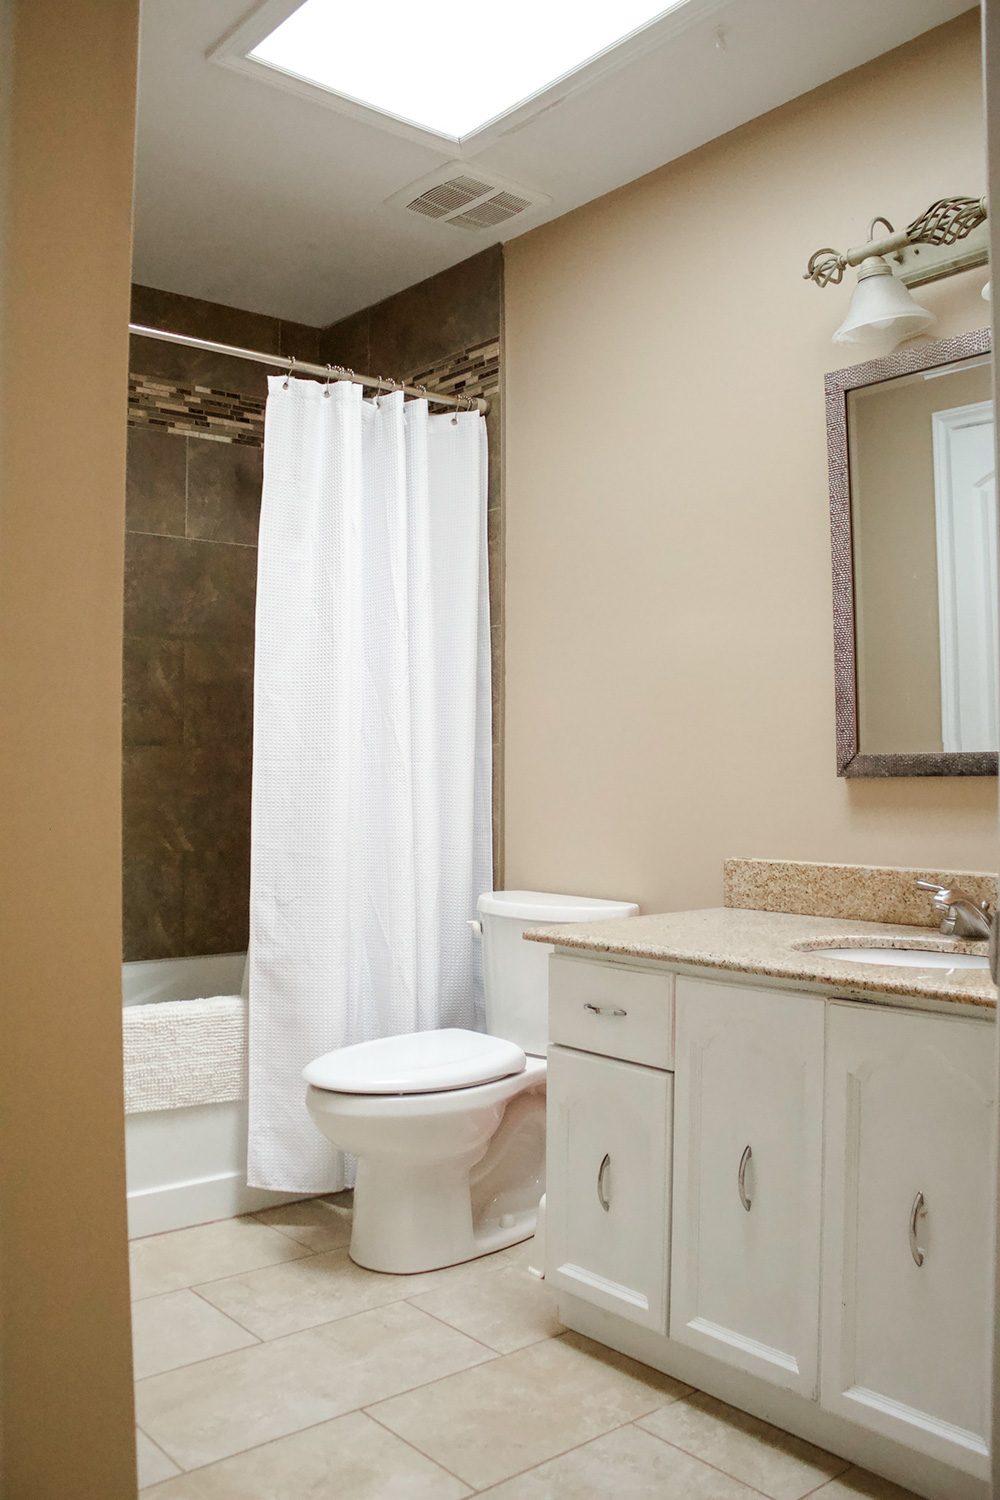 Week 1 of the one room challenge. A family bathroom remodel by Ashley Izsak